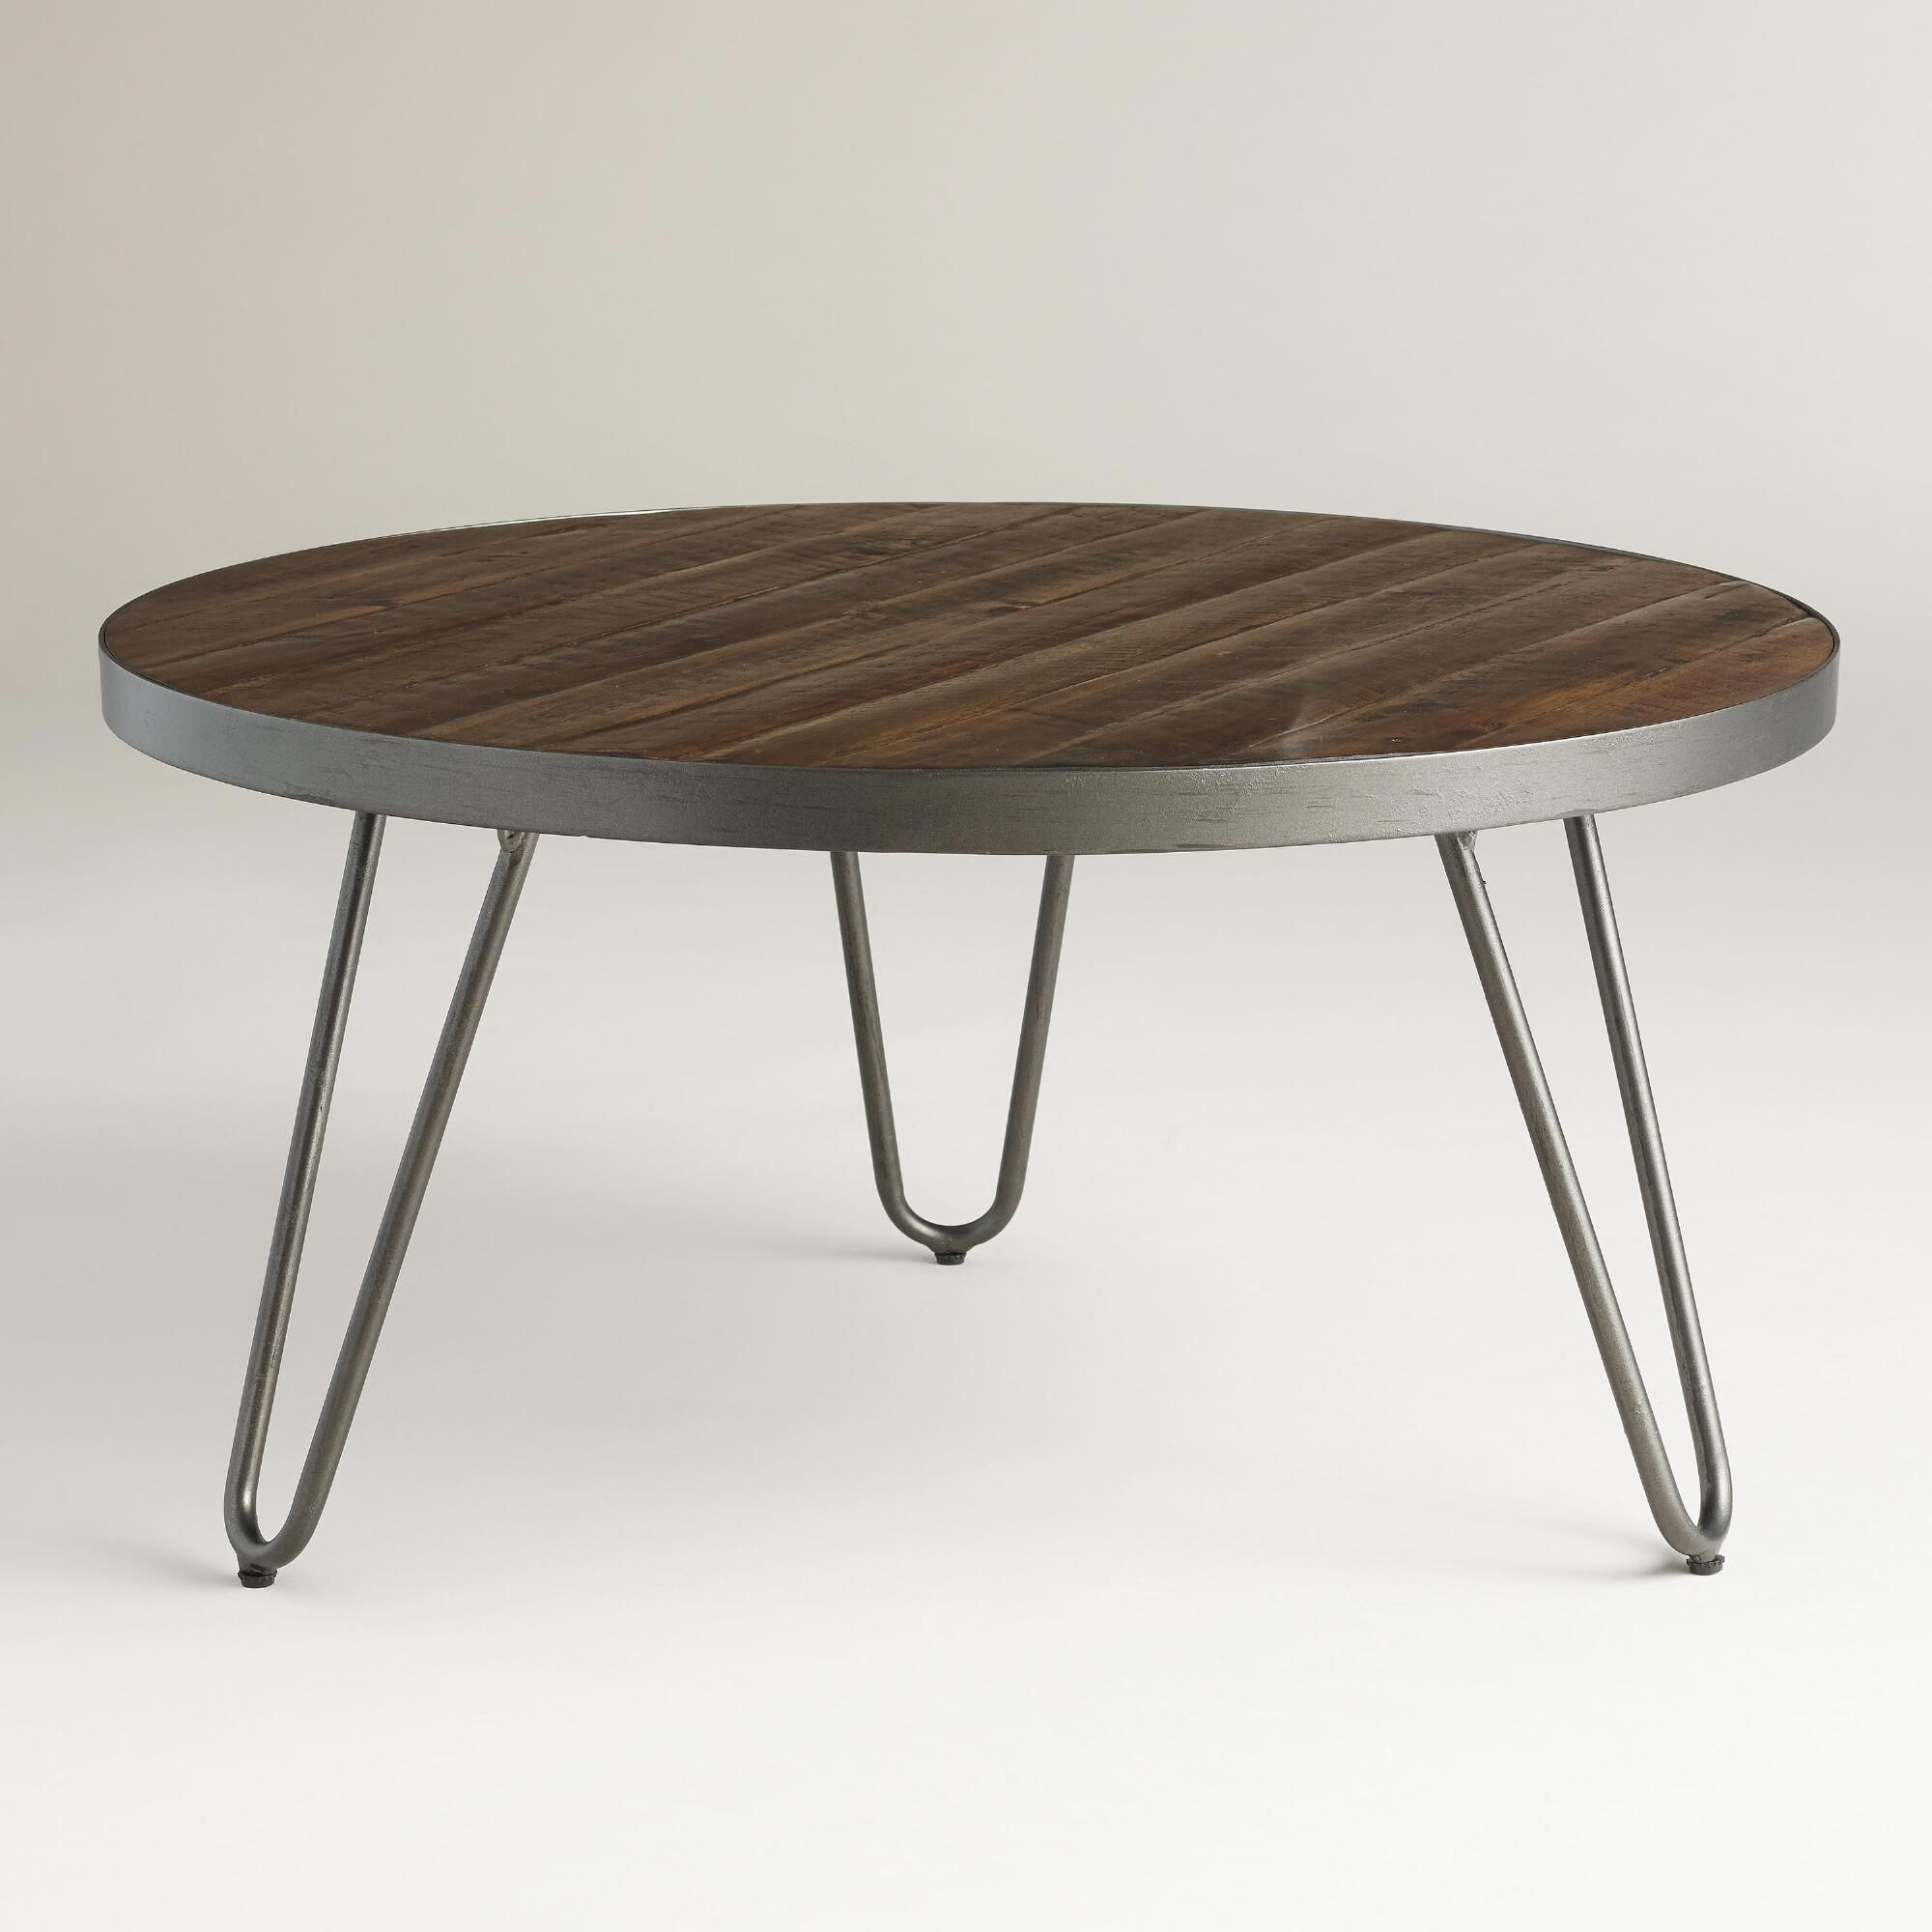 Round Wood Hairpin Coffee Table Round Wood Coffee Table Hairpin Coffee Table Coffee Table